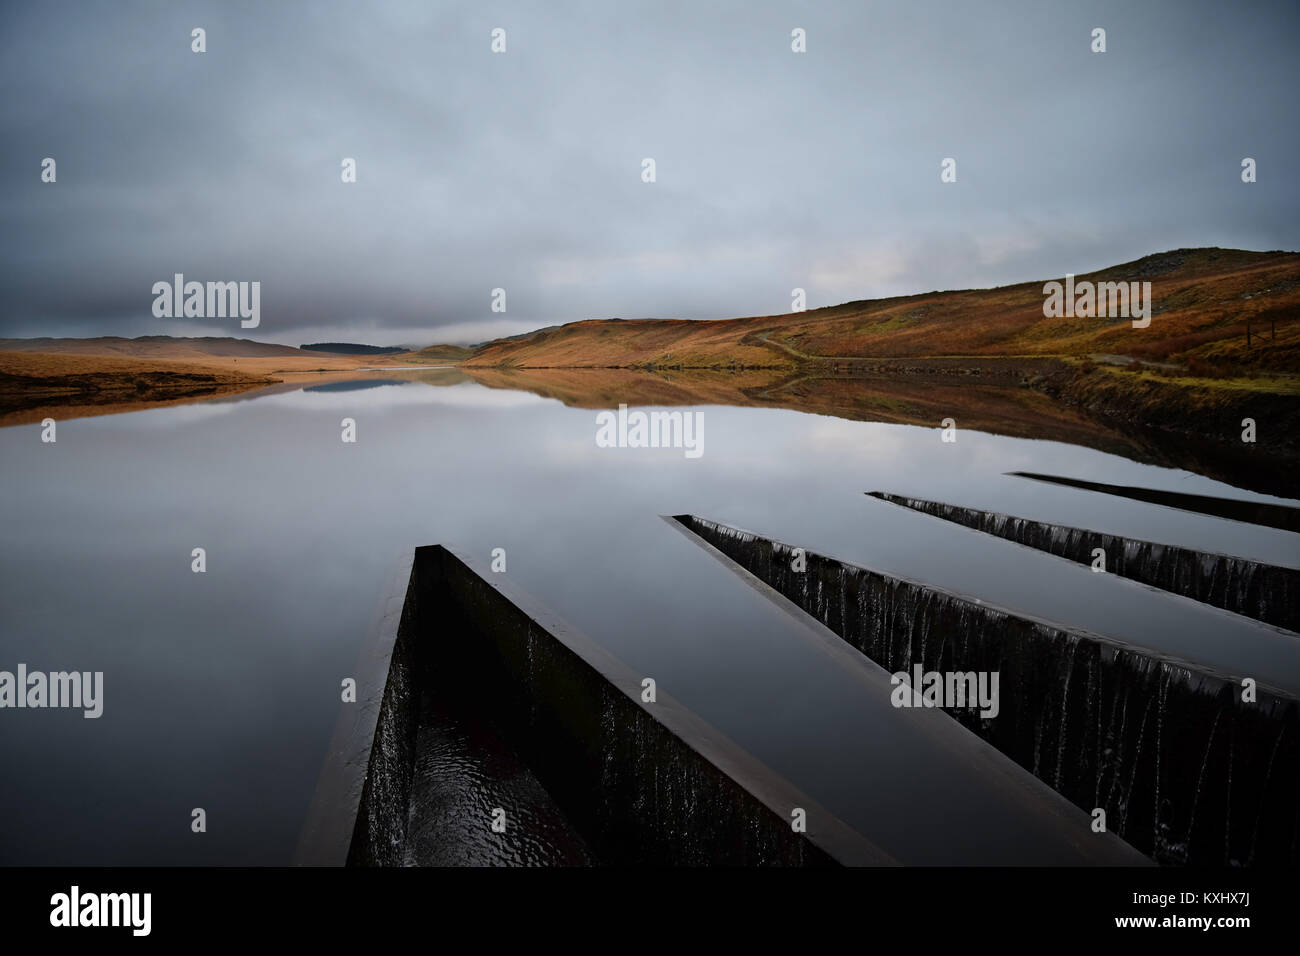 Craig y pistyll dam on a still overcast day - Stock Image